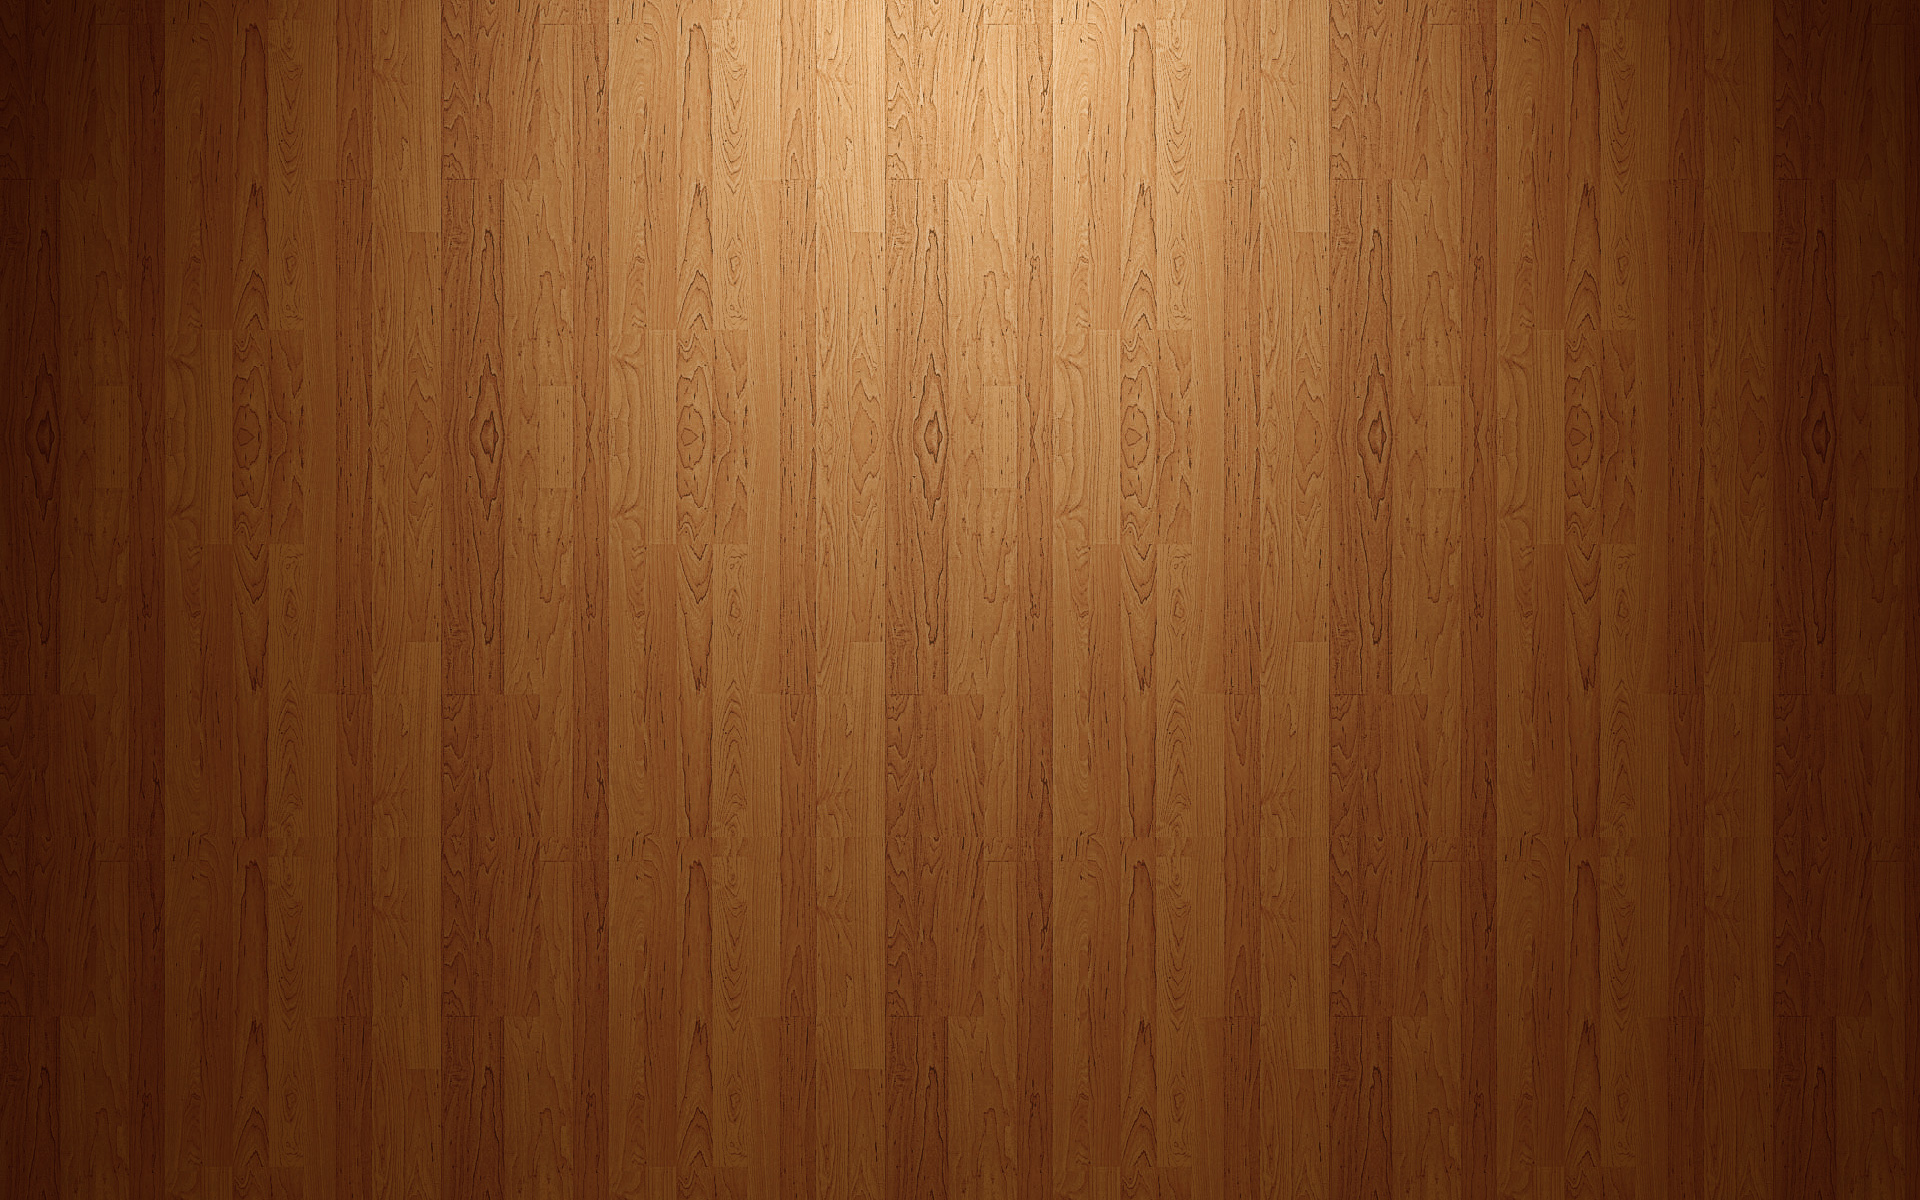 wood hd wallpaper background image 1920x1200 id 8 wallpaper